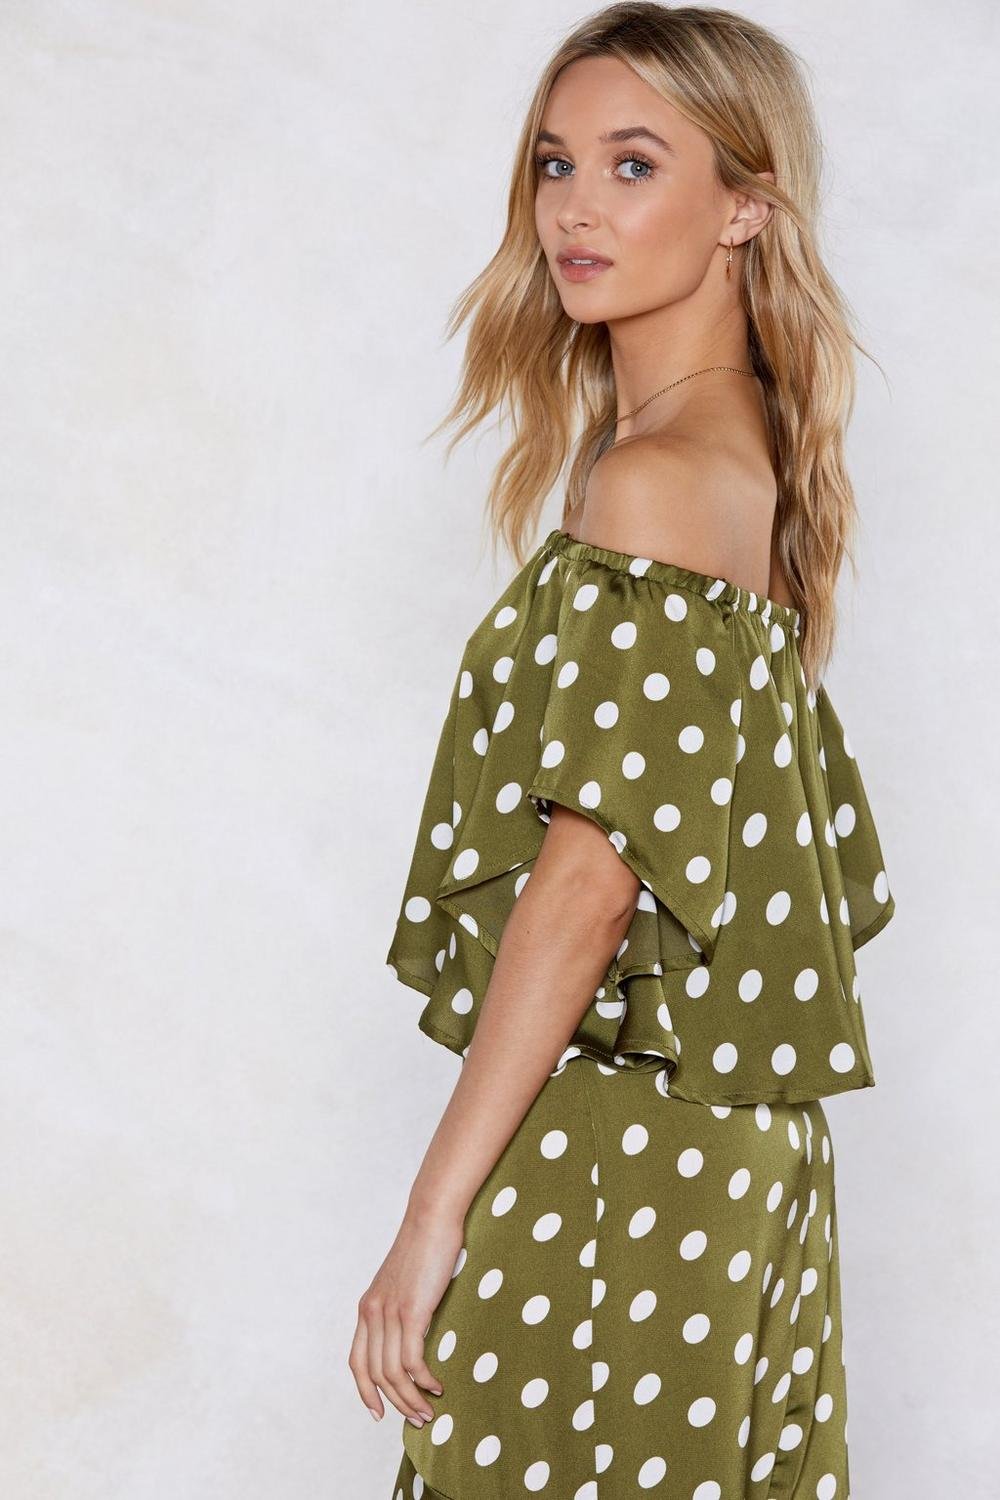 Get Summer Ready With Nasty Gal With An EXTRA 50 Off Markdowns Get Summer Ready With Nasty Gal With An EXTRA 50 Off Markdowns new images